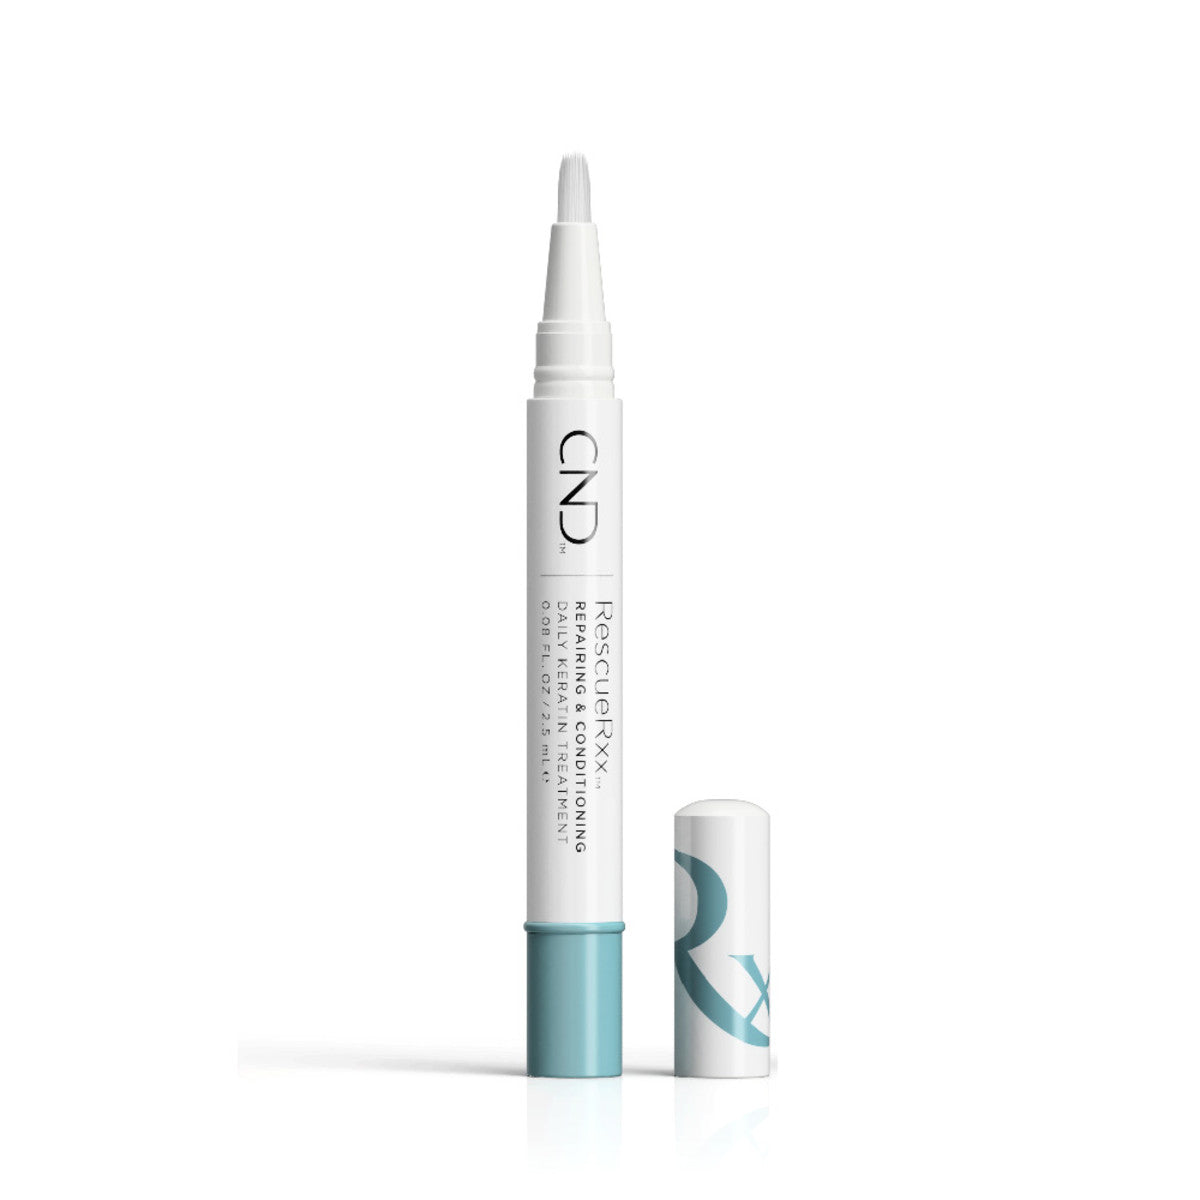 CND Essential Rescuerxx Care Pen 2.5 ml - Brazilian Soul Beauty CND - Brazilian Soul Beauty